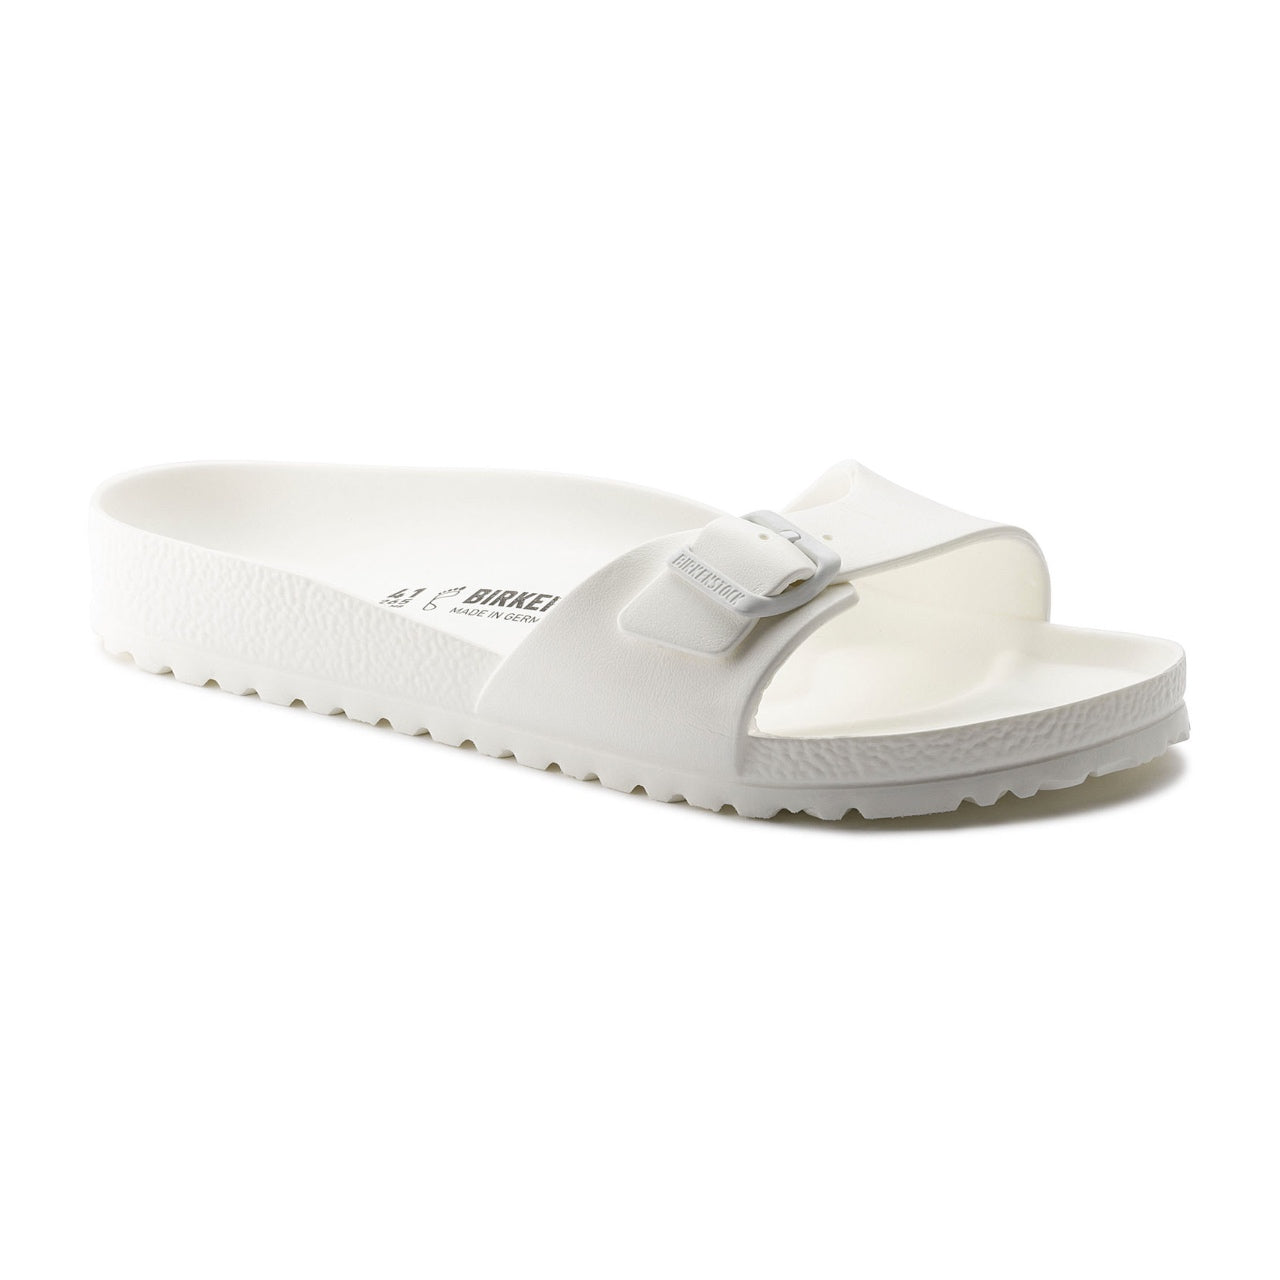 Birkenstock Vegan Madrid Sandals -White (EVA)